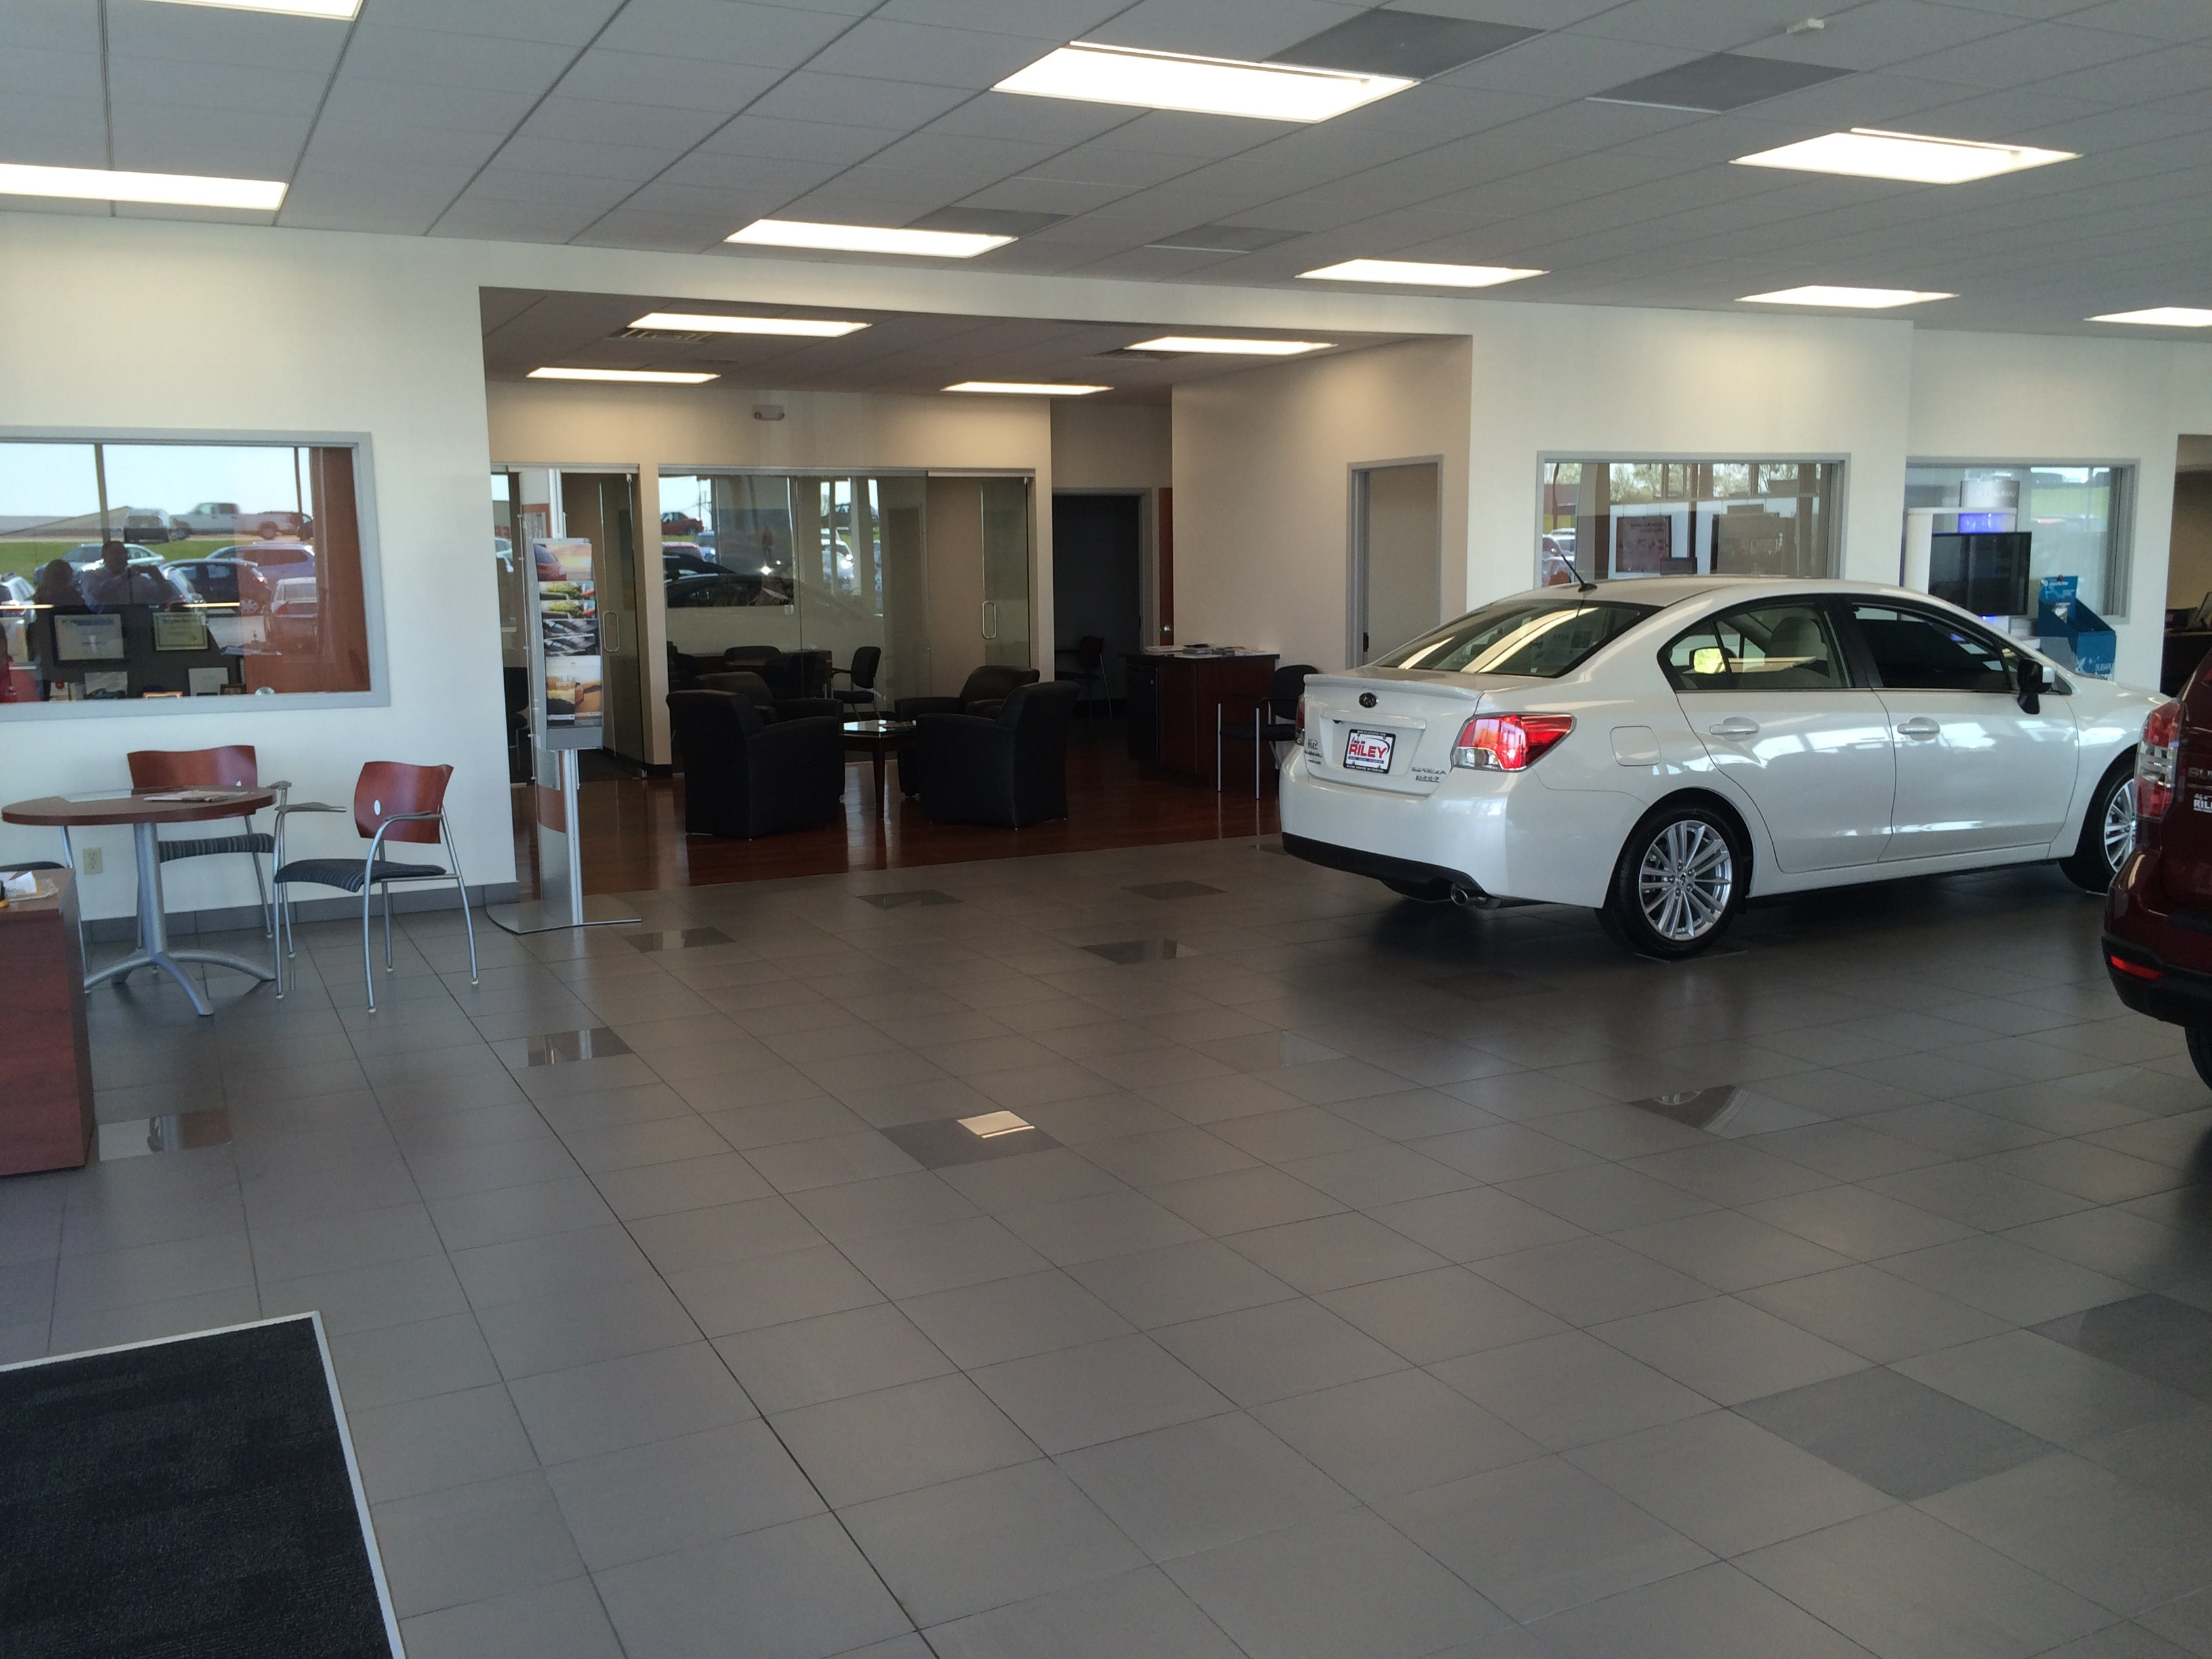 New and used subaru dealer in dubuque serving manchester lancaster wi platteville wi and galena il riley subaru